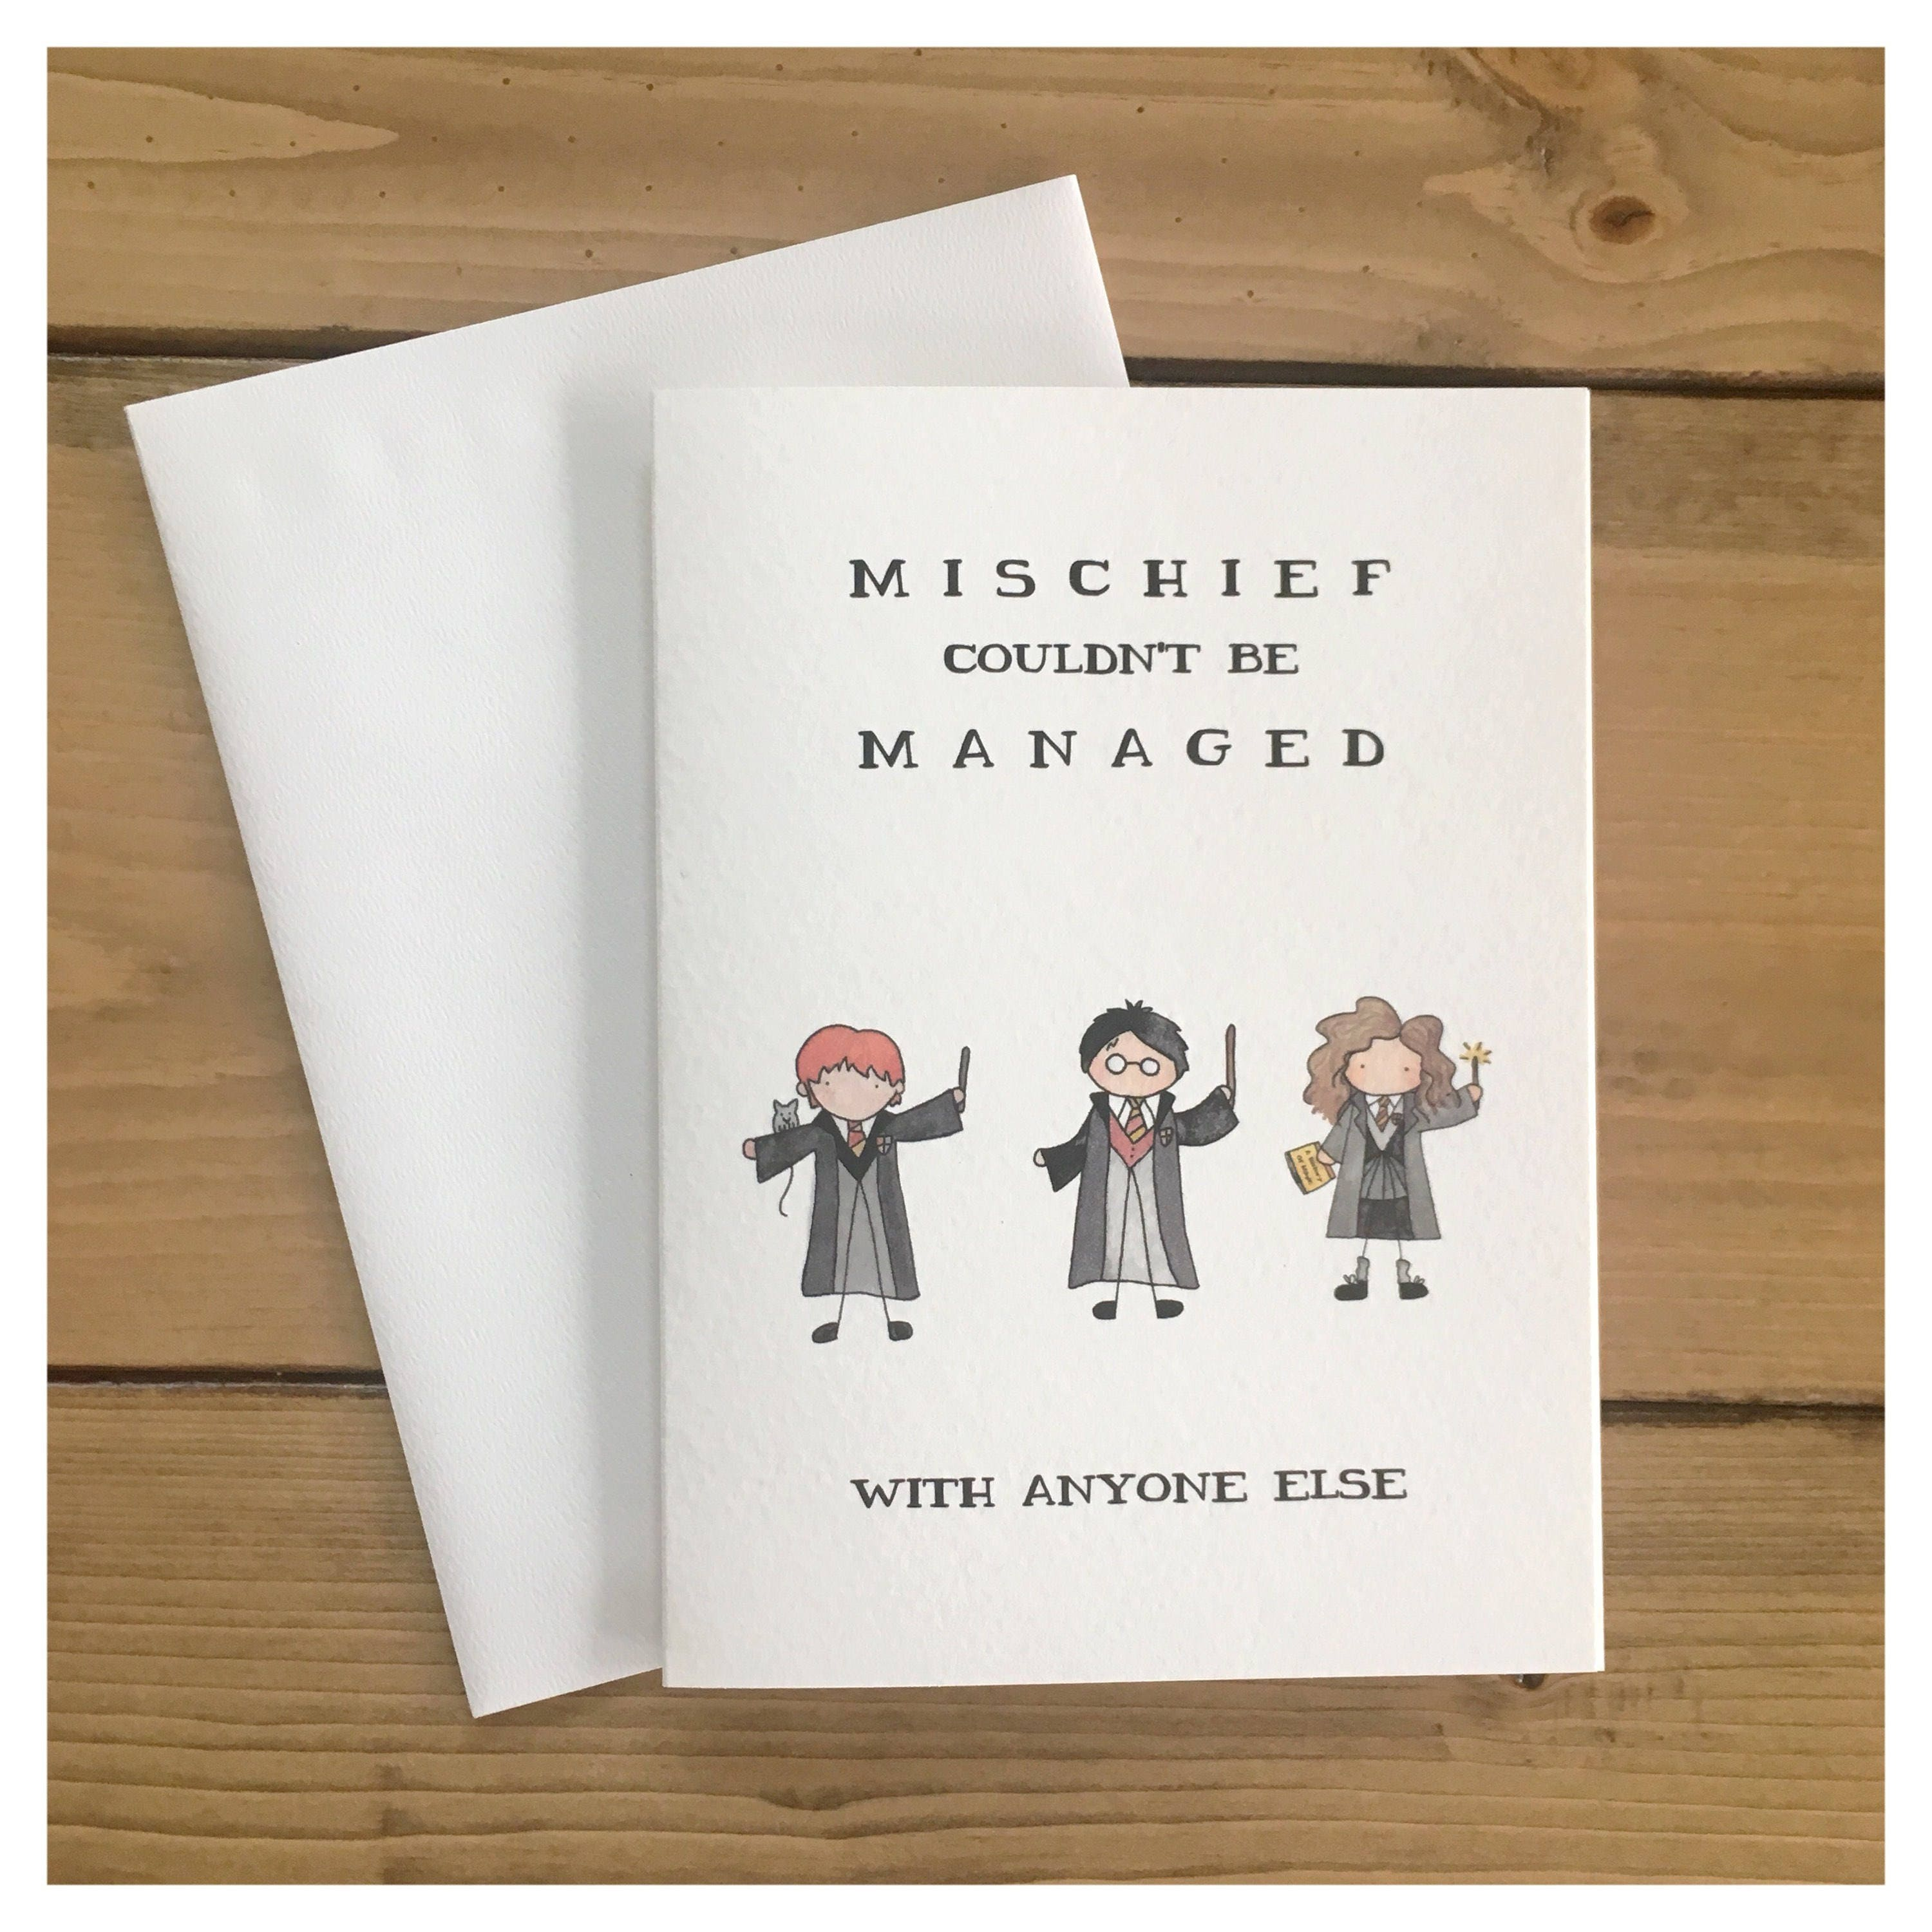 Mischief managed card harry potter card harry potter mischief mischief managed card harry potter card harry potter mischief managed greeting cards harry potter birthday harry potter gift hp m4hsunfo Gallery